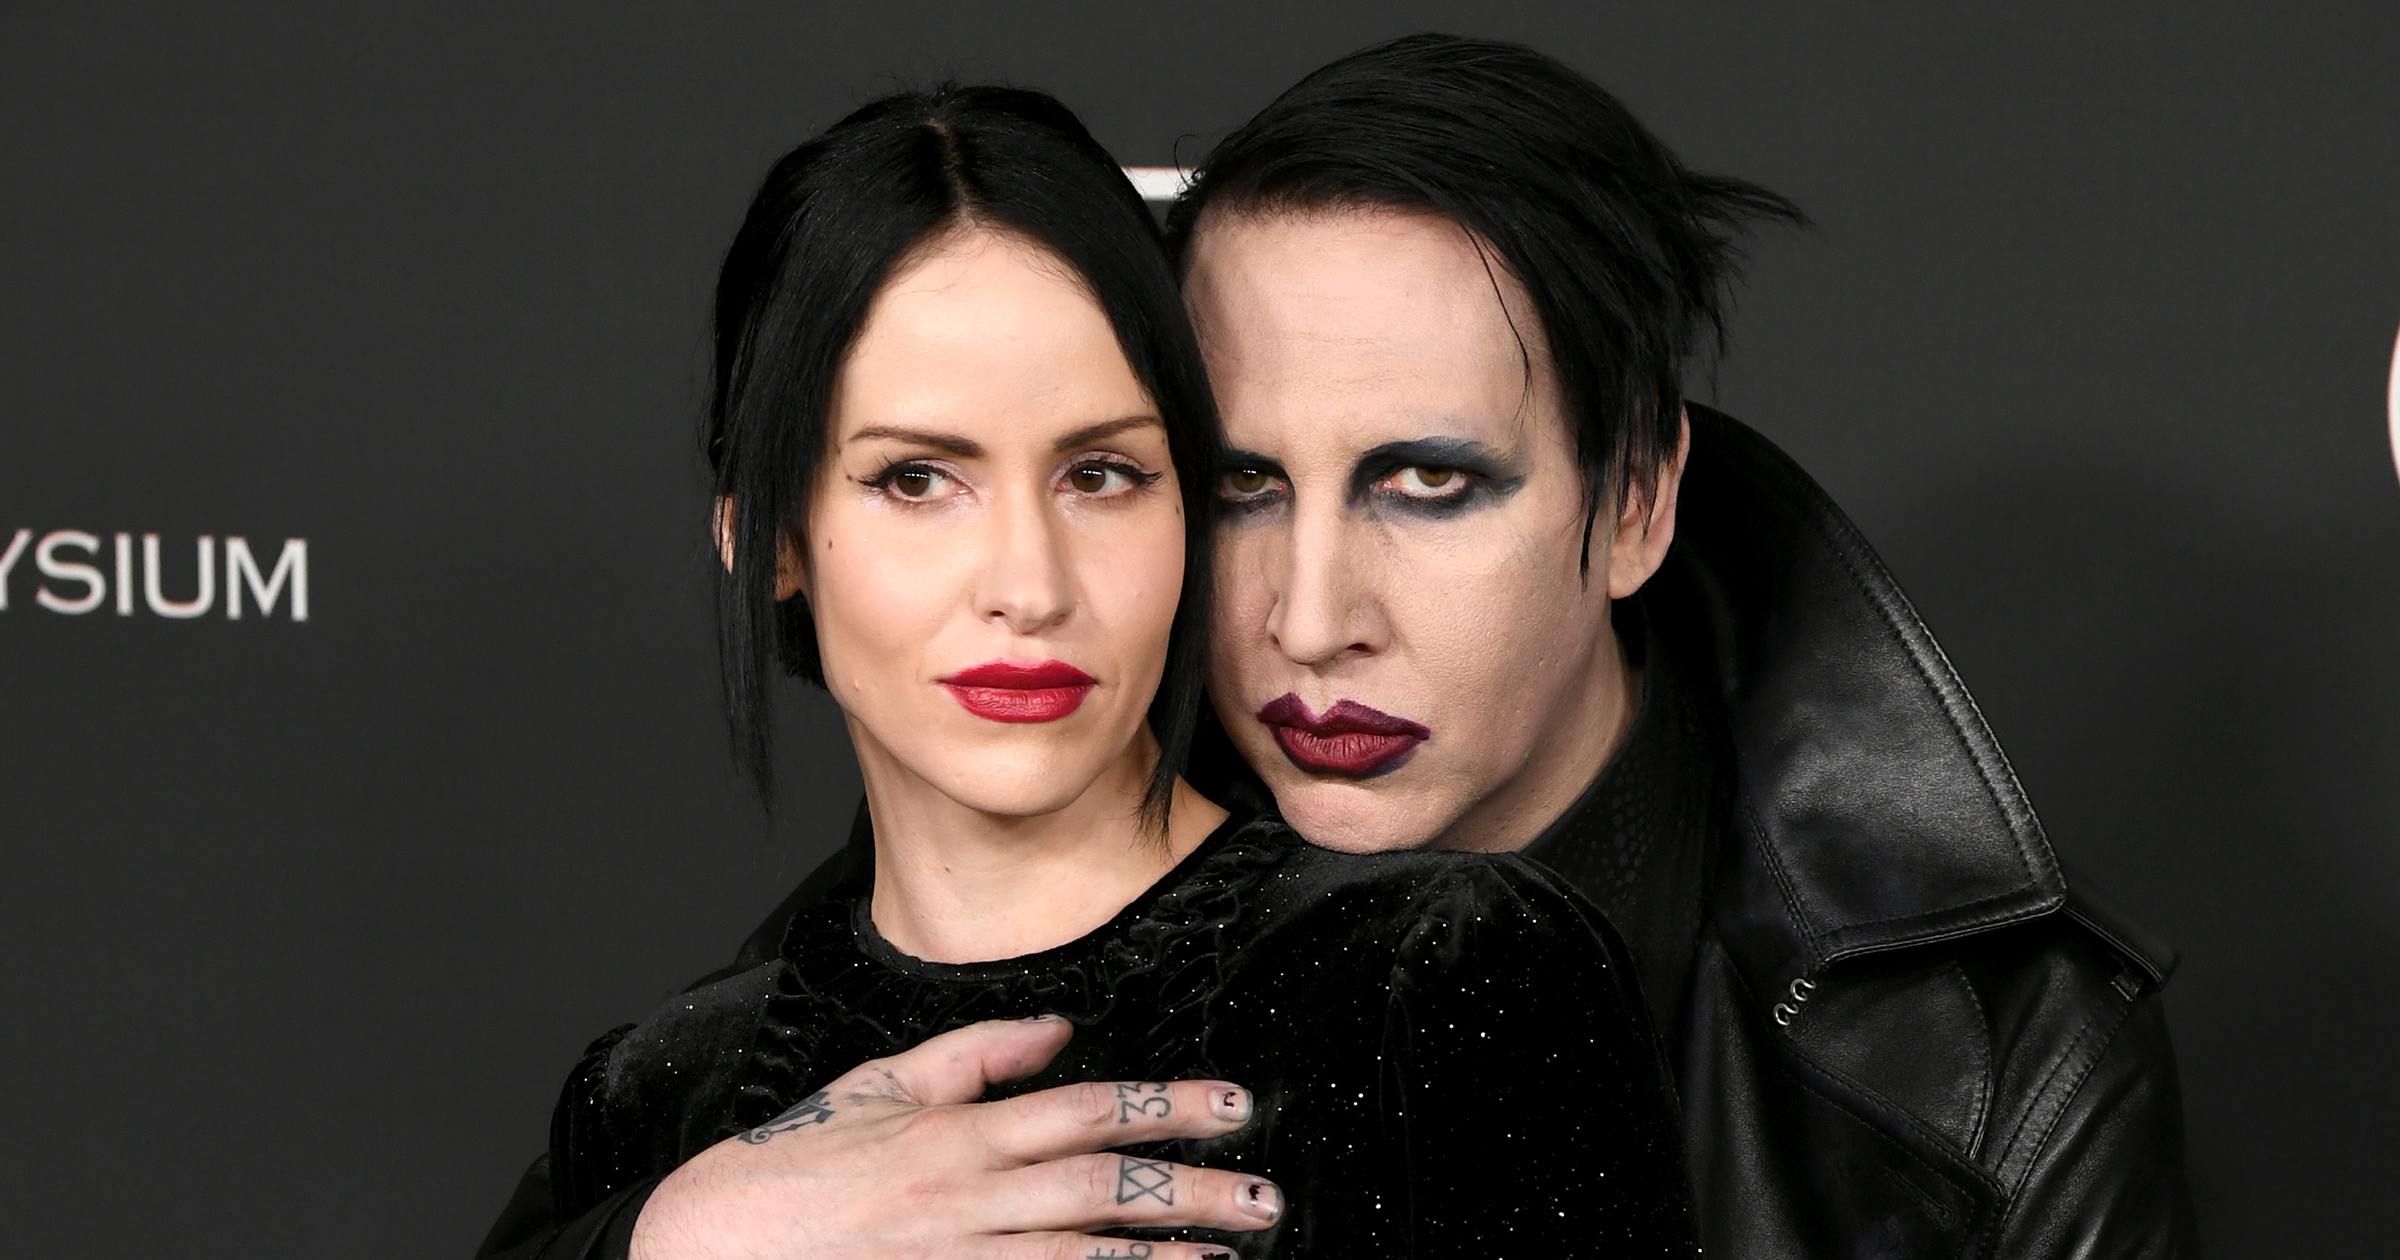 Did MARILYN MANSON & His Wife Try To Plant Fake Abuse Stories To Discredit His Victims?